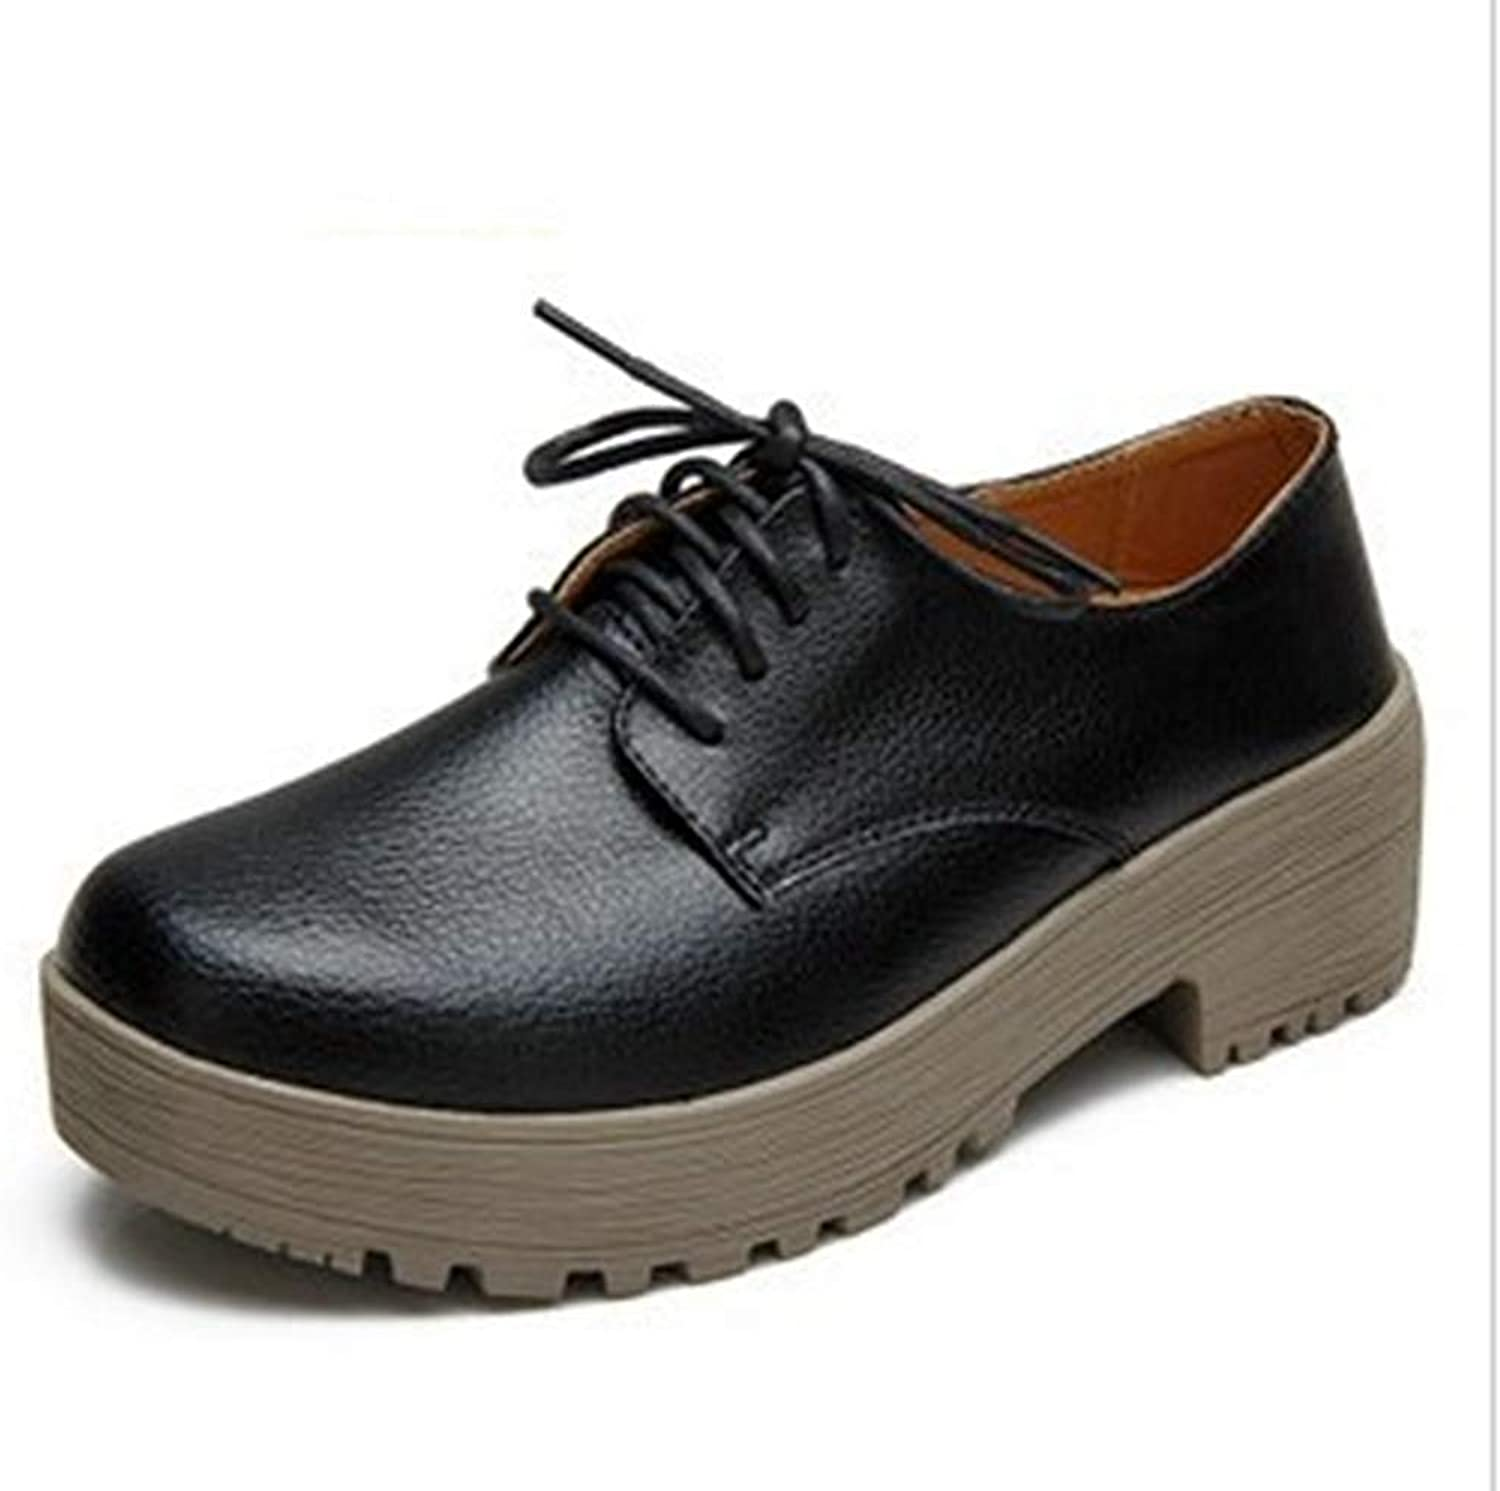 Women's Fashion Lace-up Oxfords shoes Leather Perforated Wingtips Square-Toe Wedge Platform Oxford shoes